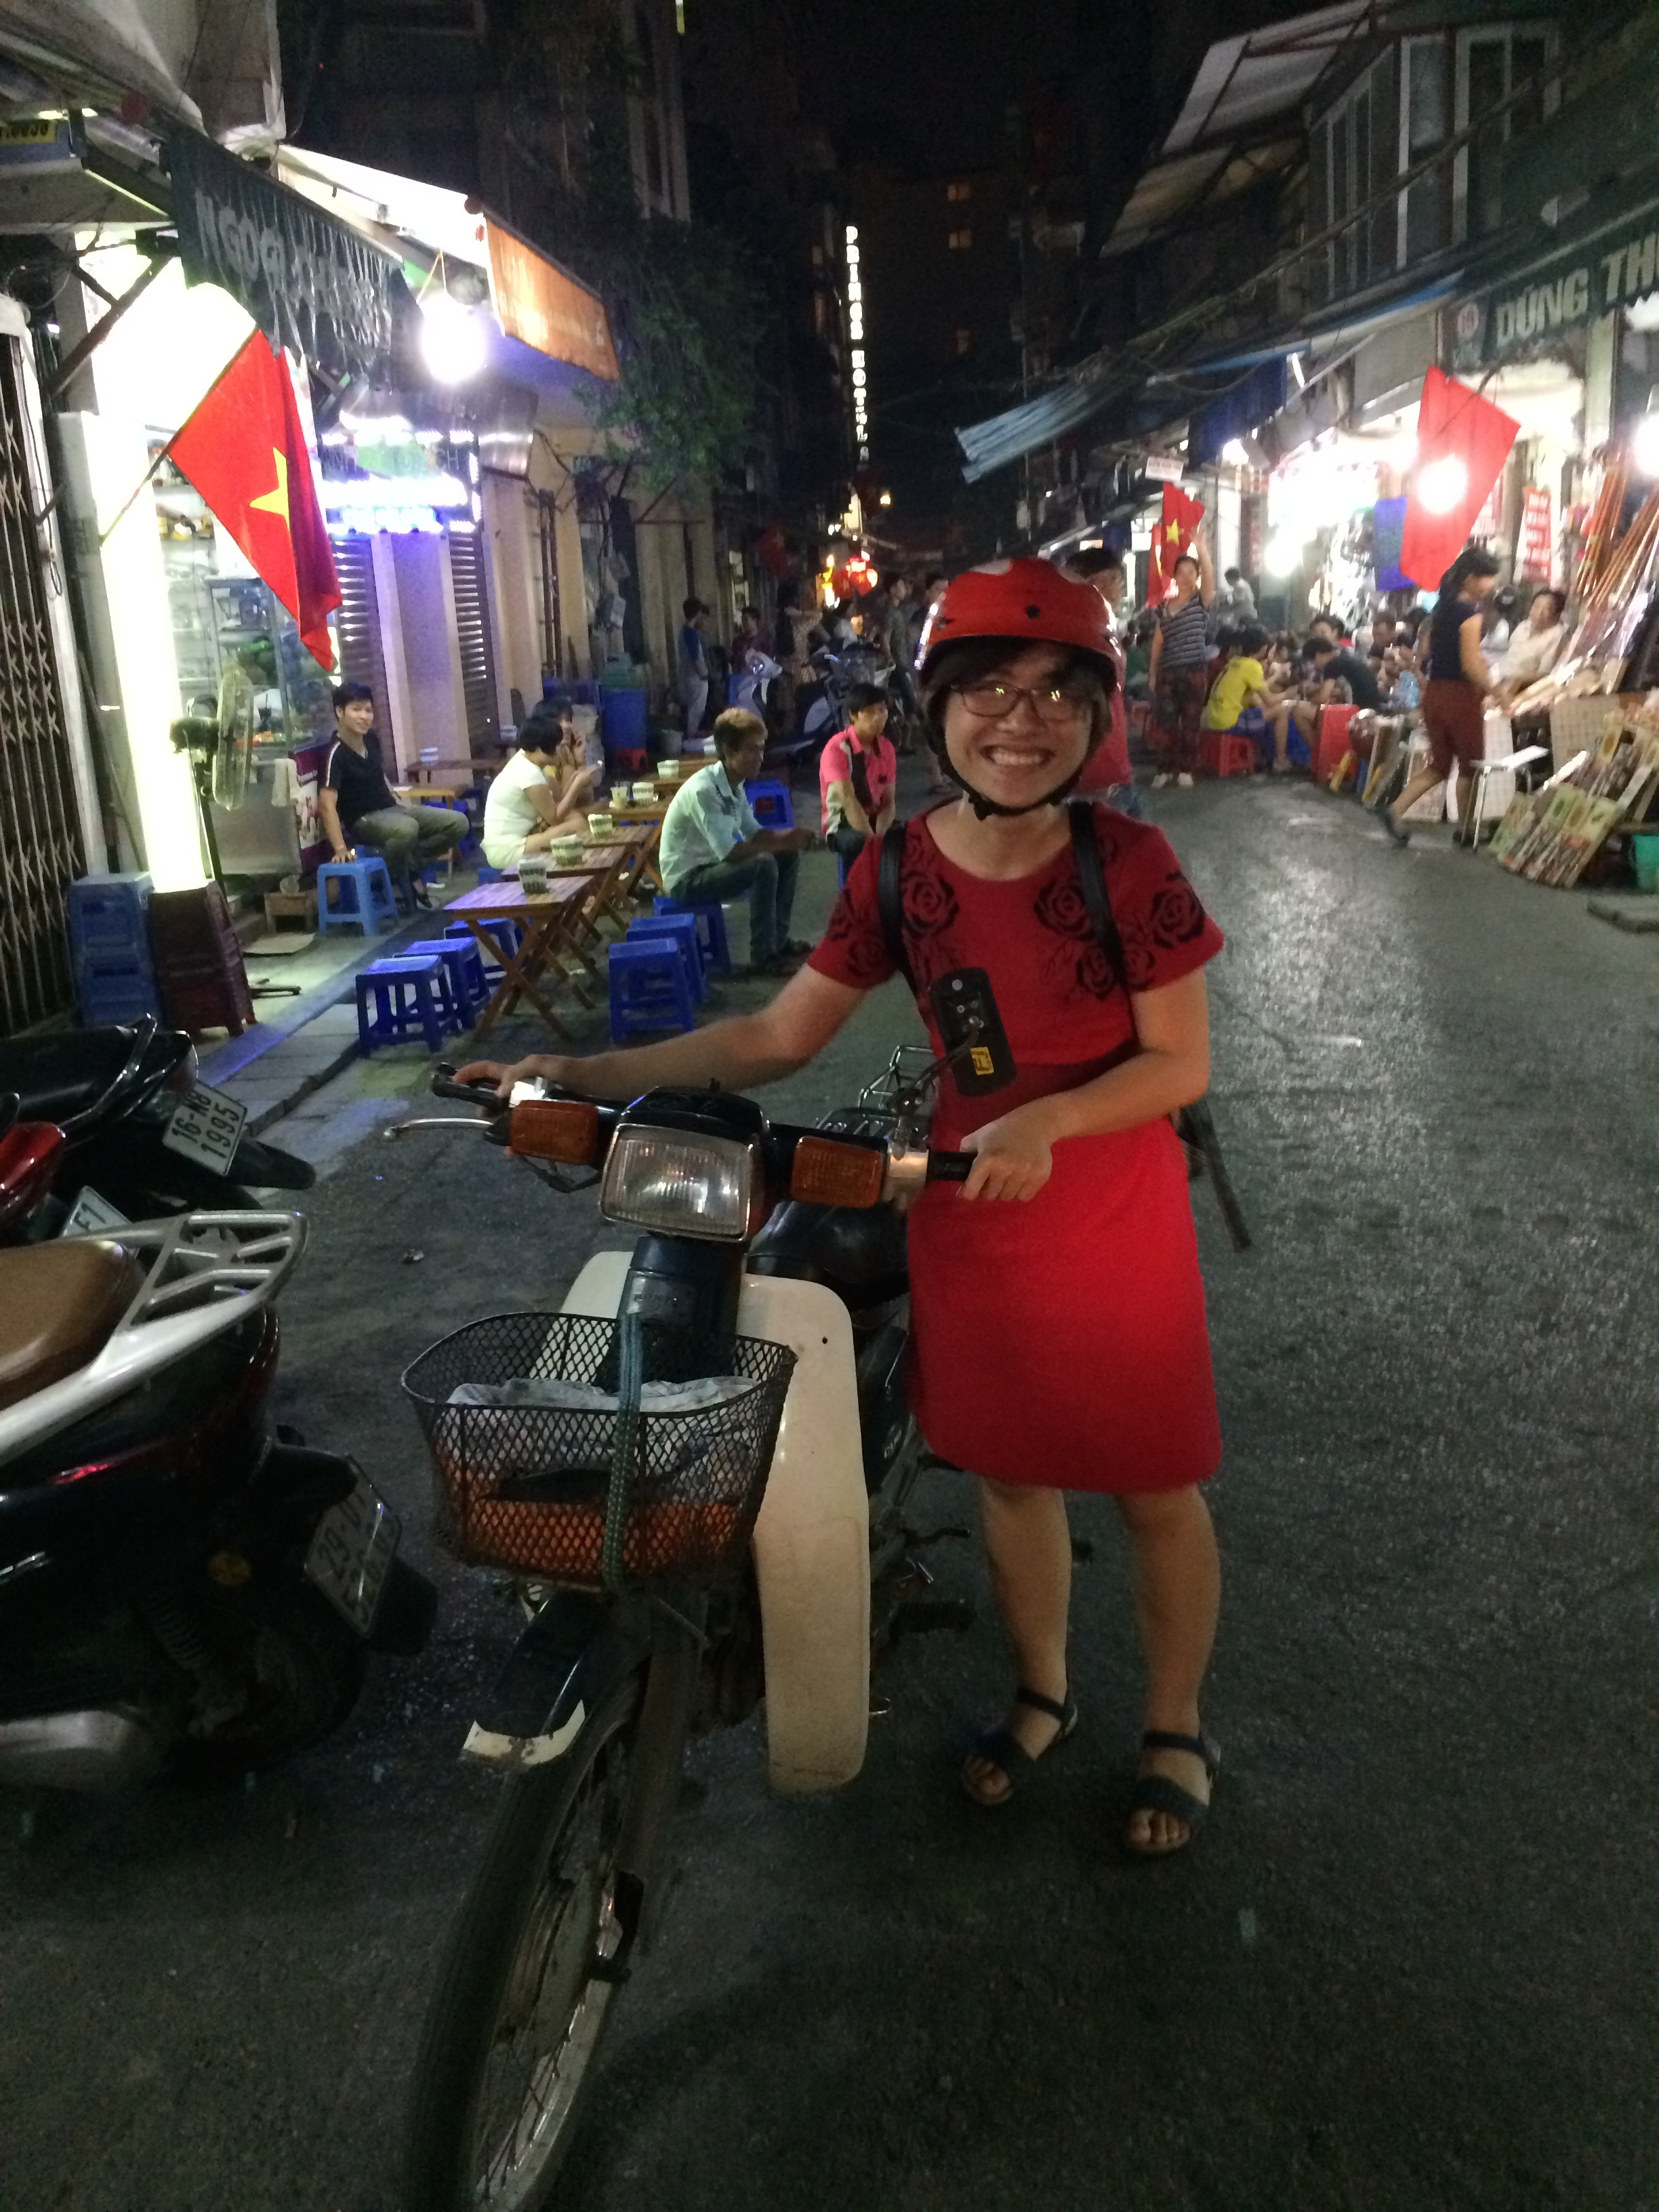 Our wonderful Vietnamese student volunteer, Jetty, who helped us bring the North Koreans to an awesome street-side dessert shop.